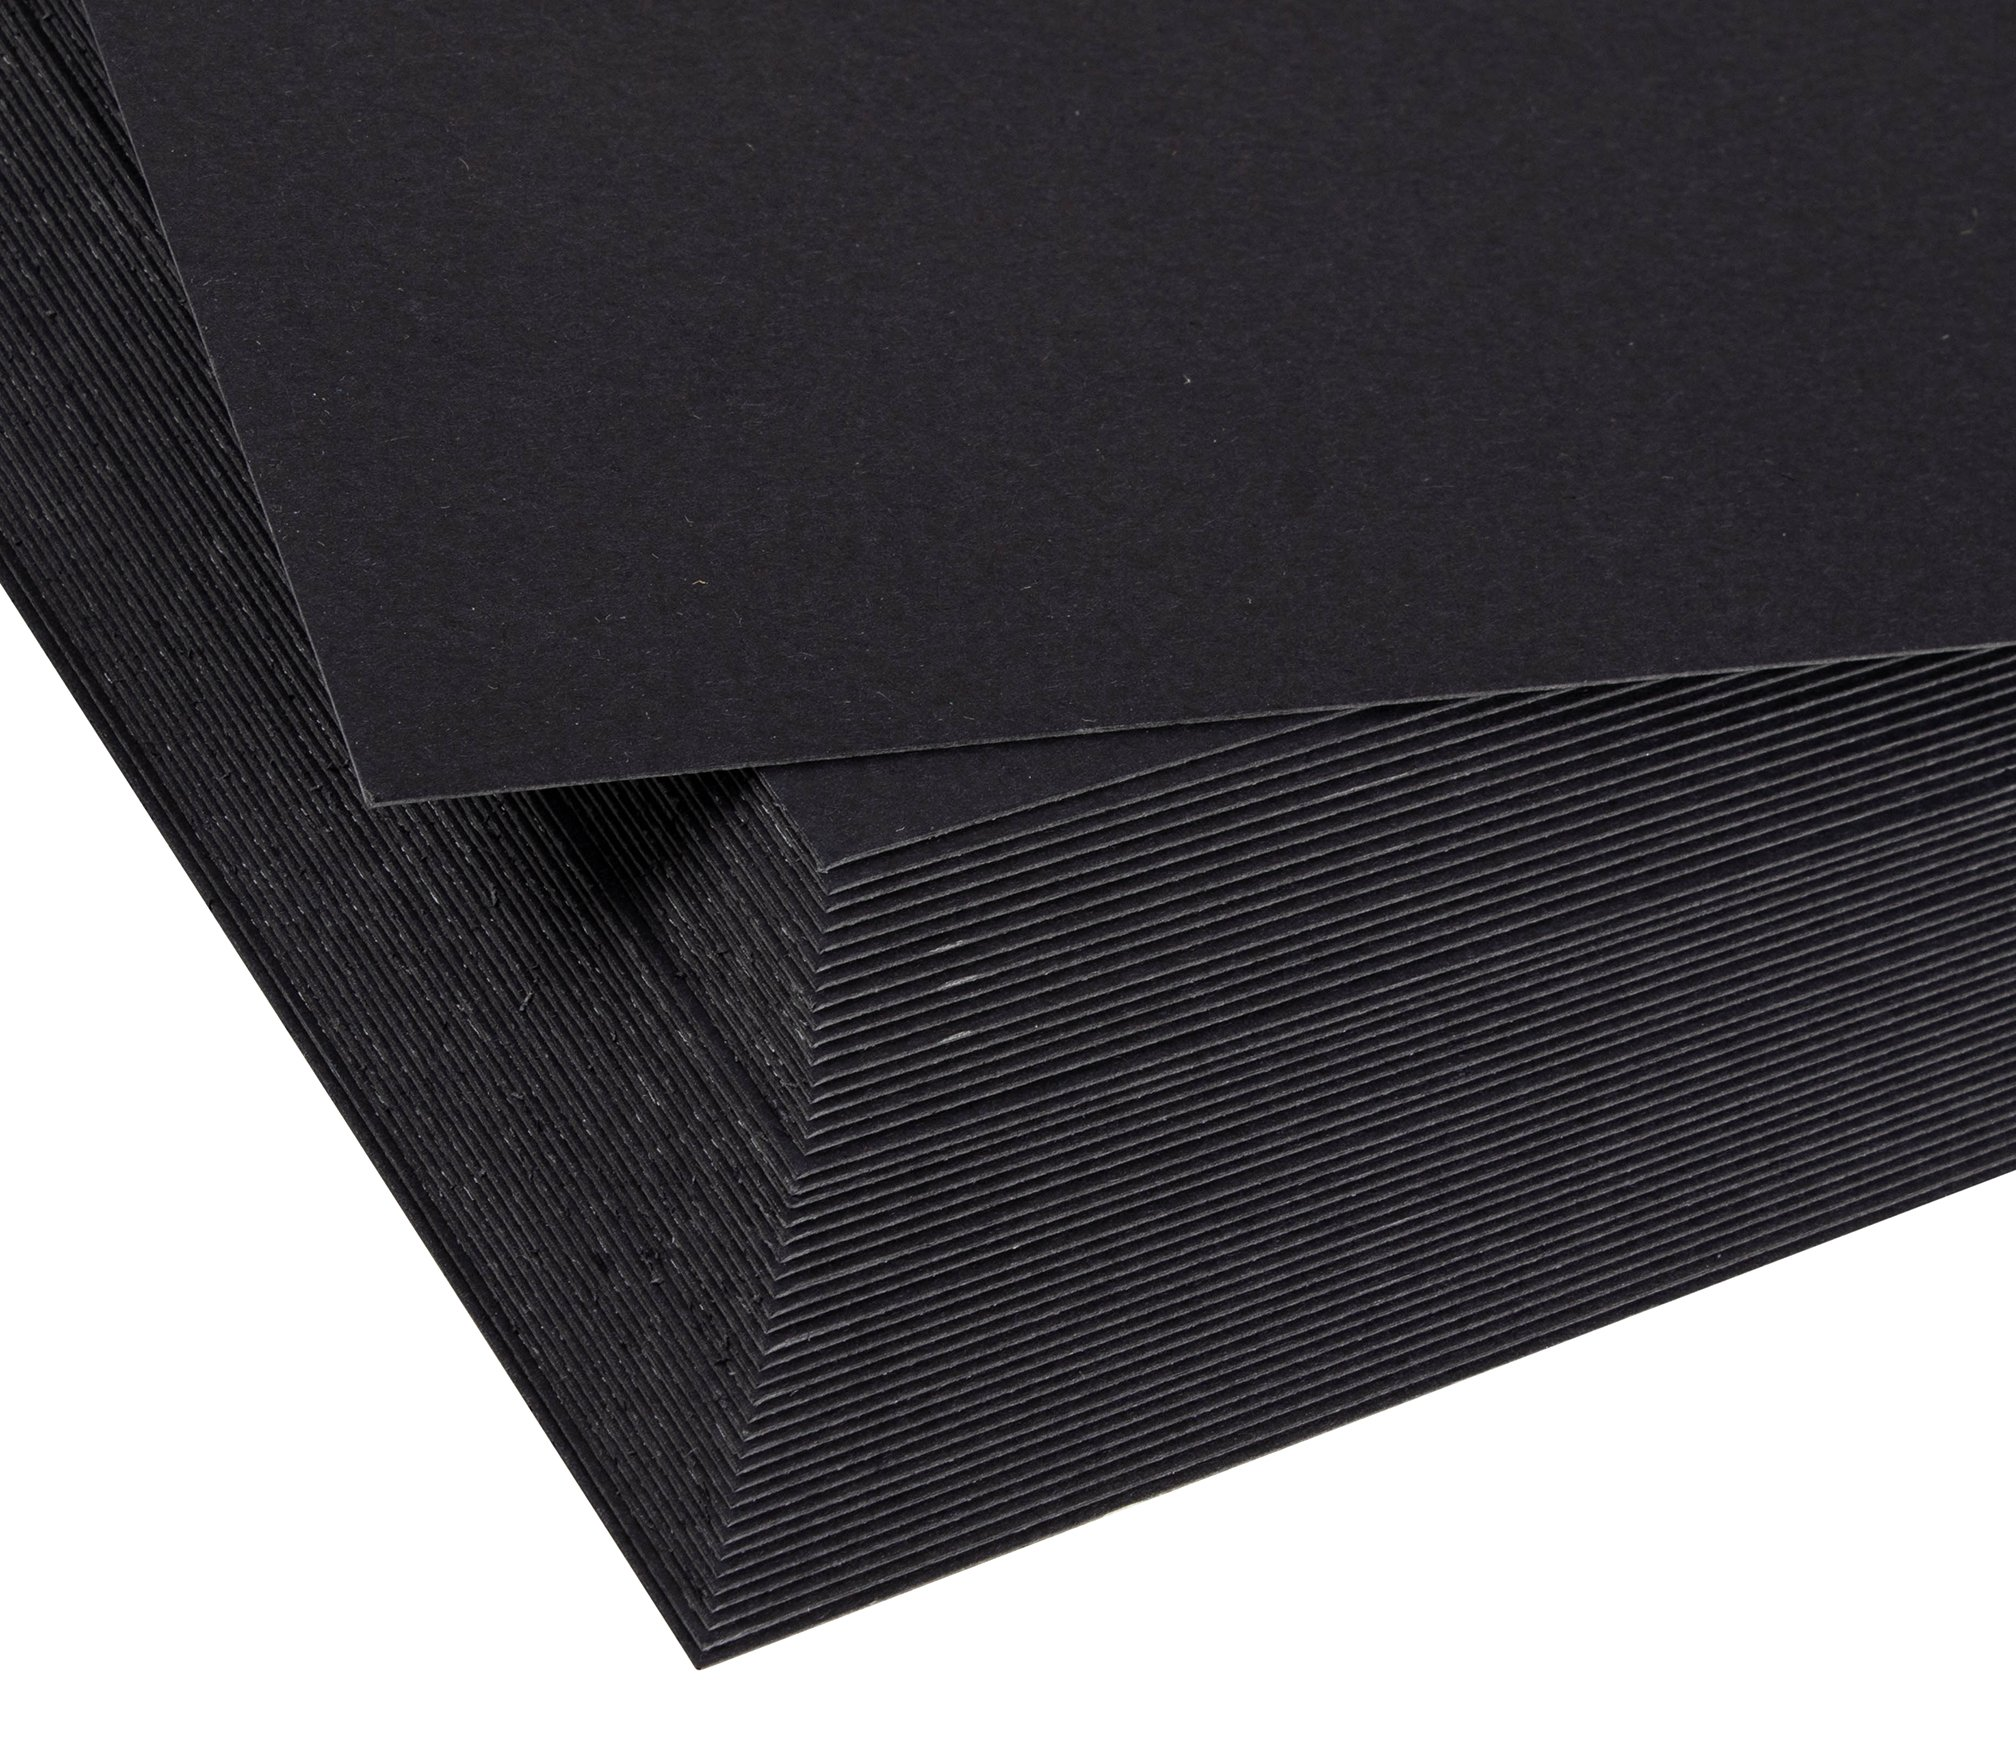 Binding Presentation Cover - 50-Pack Report Cover Paper, Letter Sized Cardstock Paper for Business Documents, School Projects, Un-Punched, 300GSM, Black, 8.5 x 11 inches by Best Paper Greetings (Image #3)